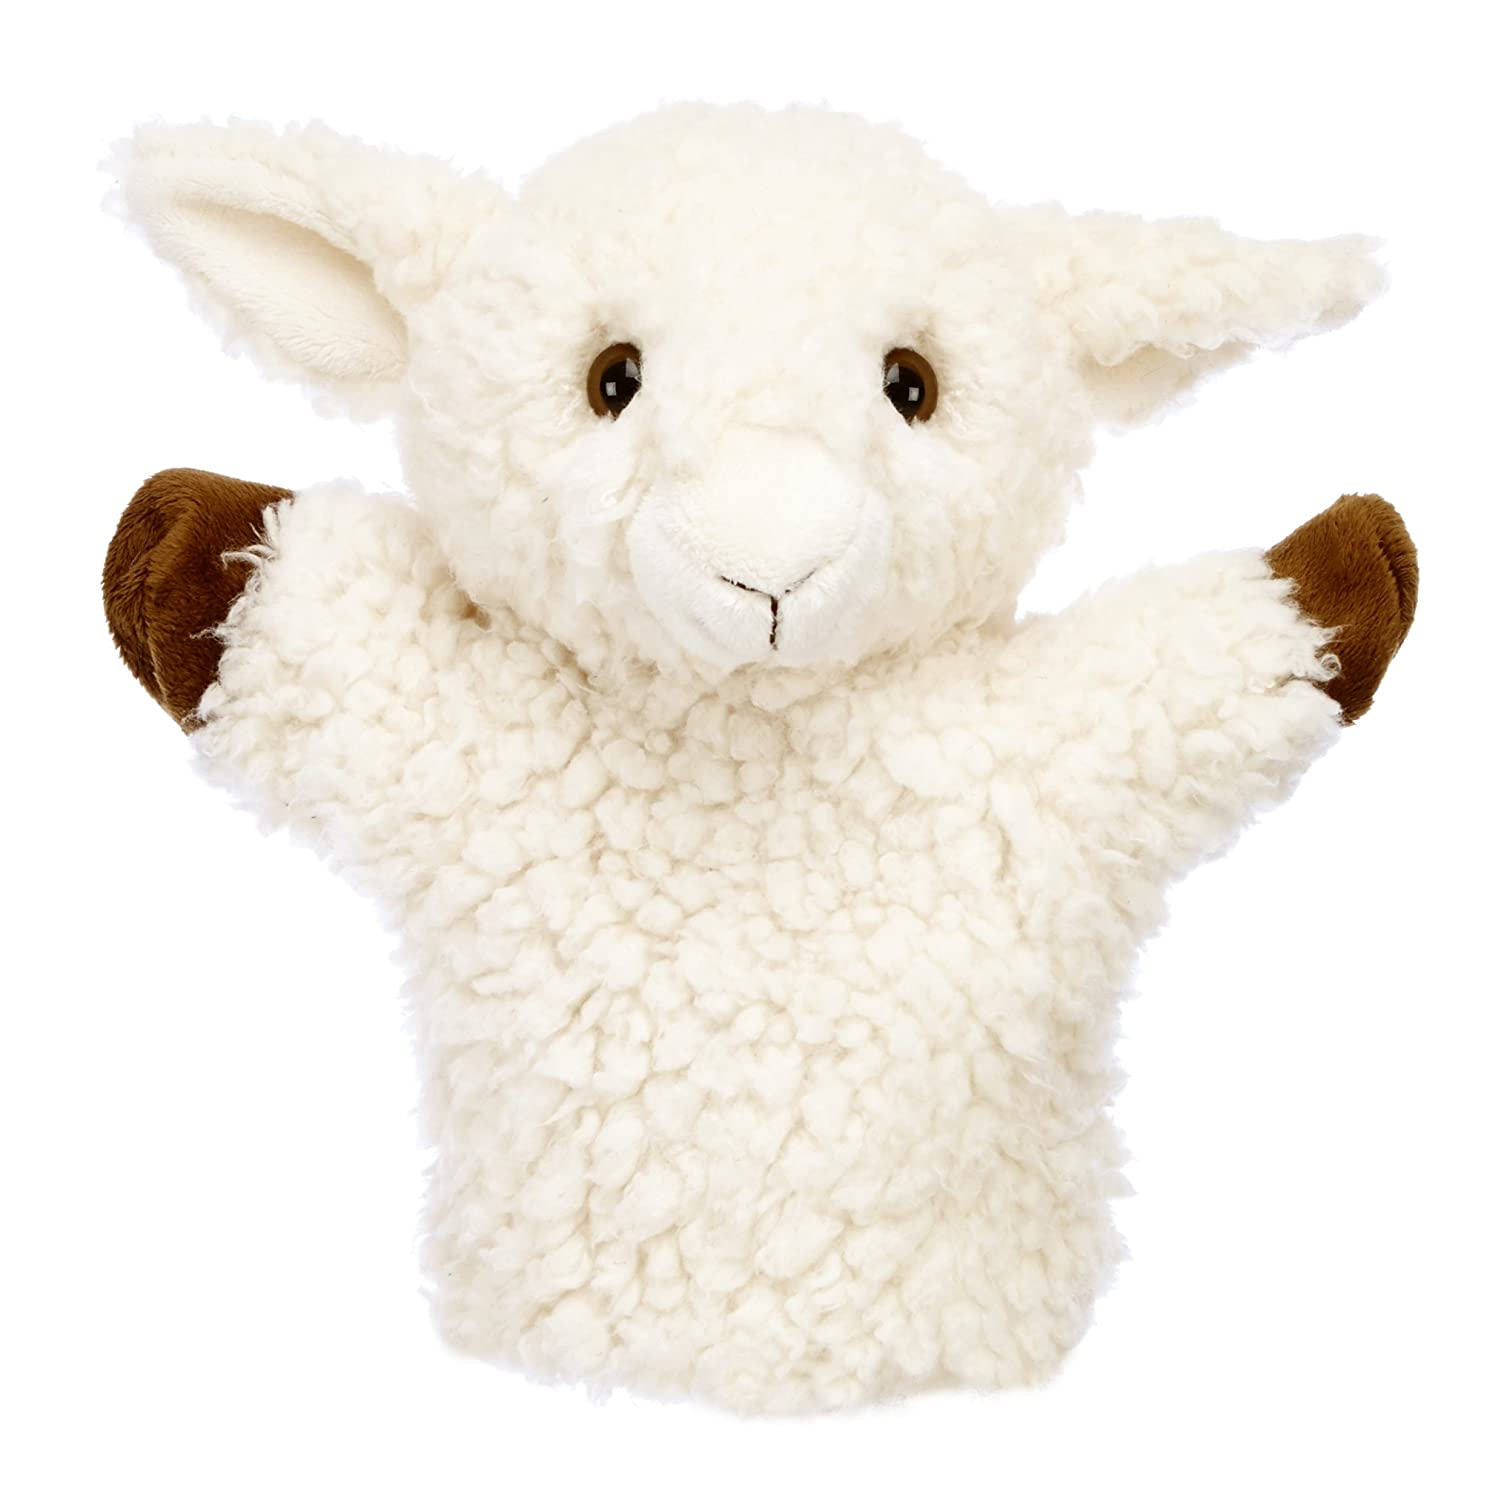 The Puppet Company CarPets White Sheep Hand Puppet